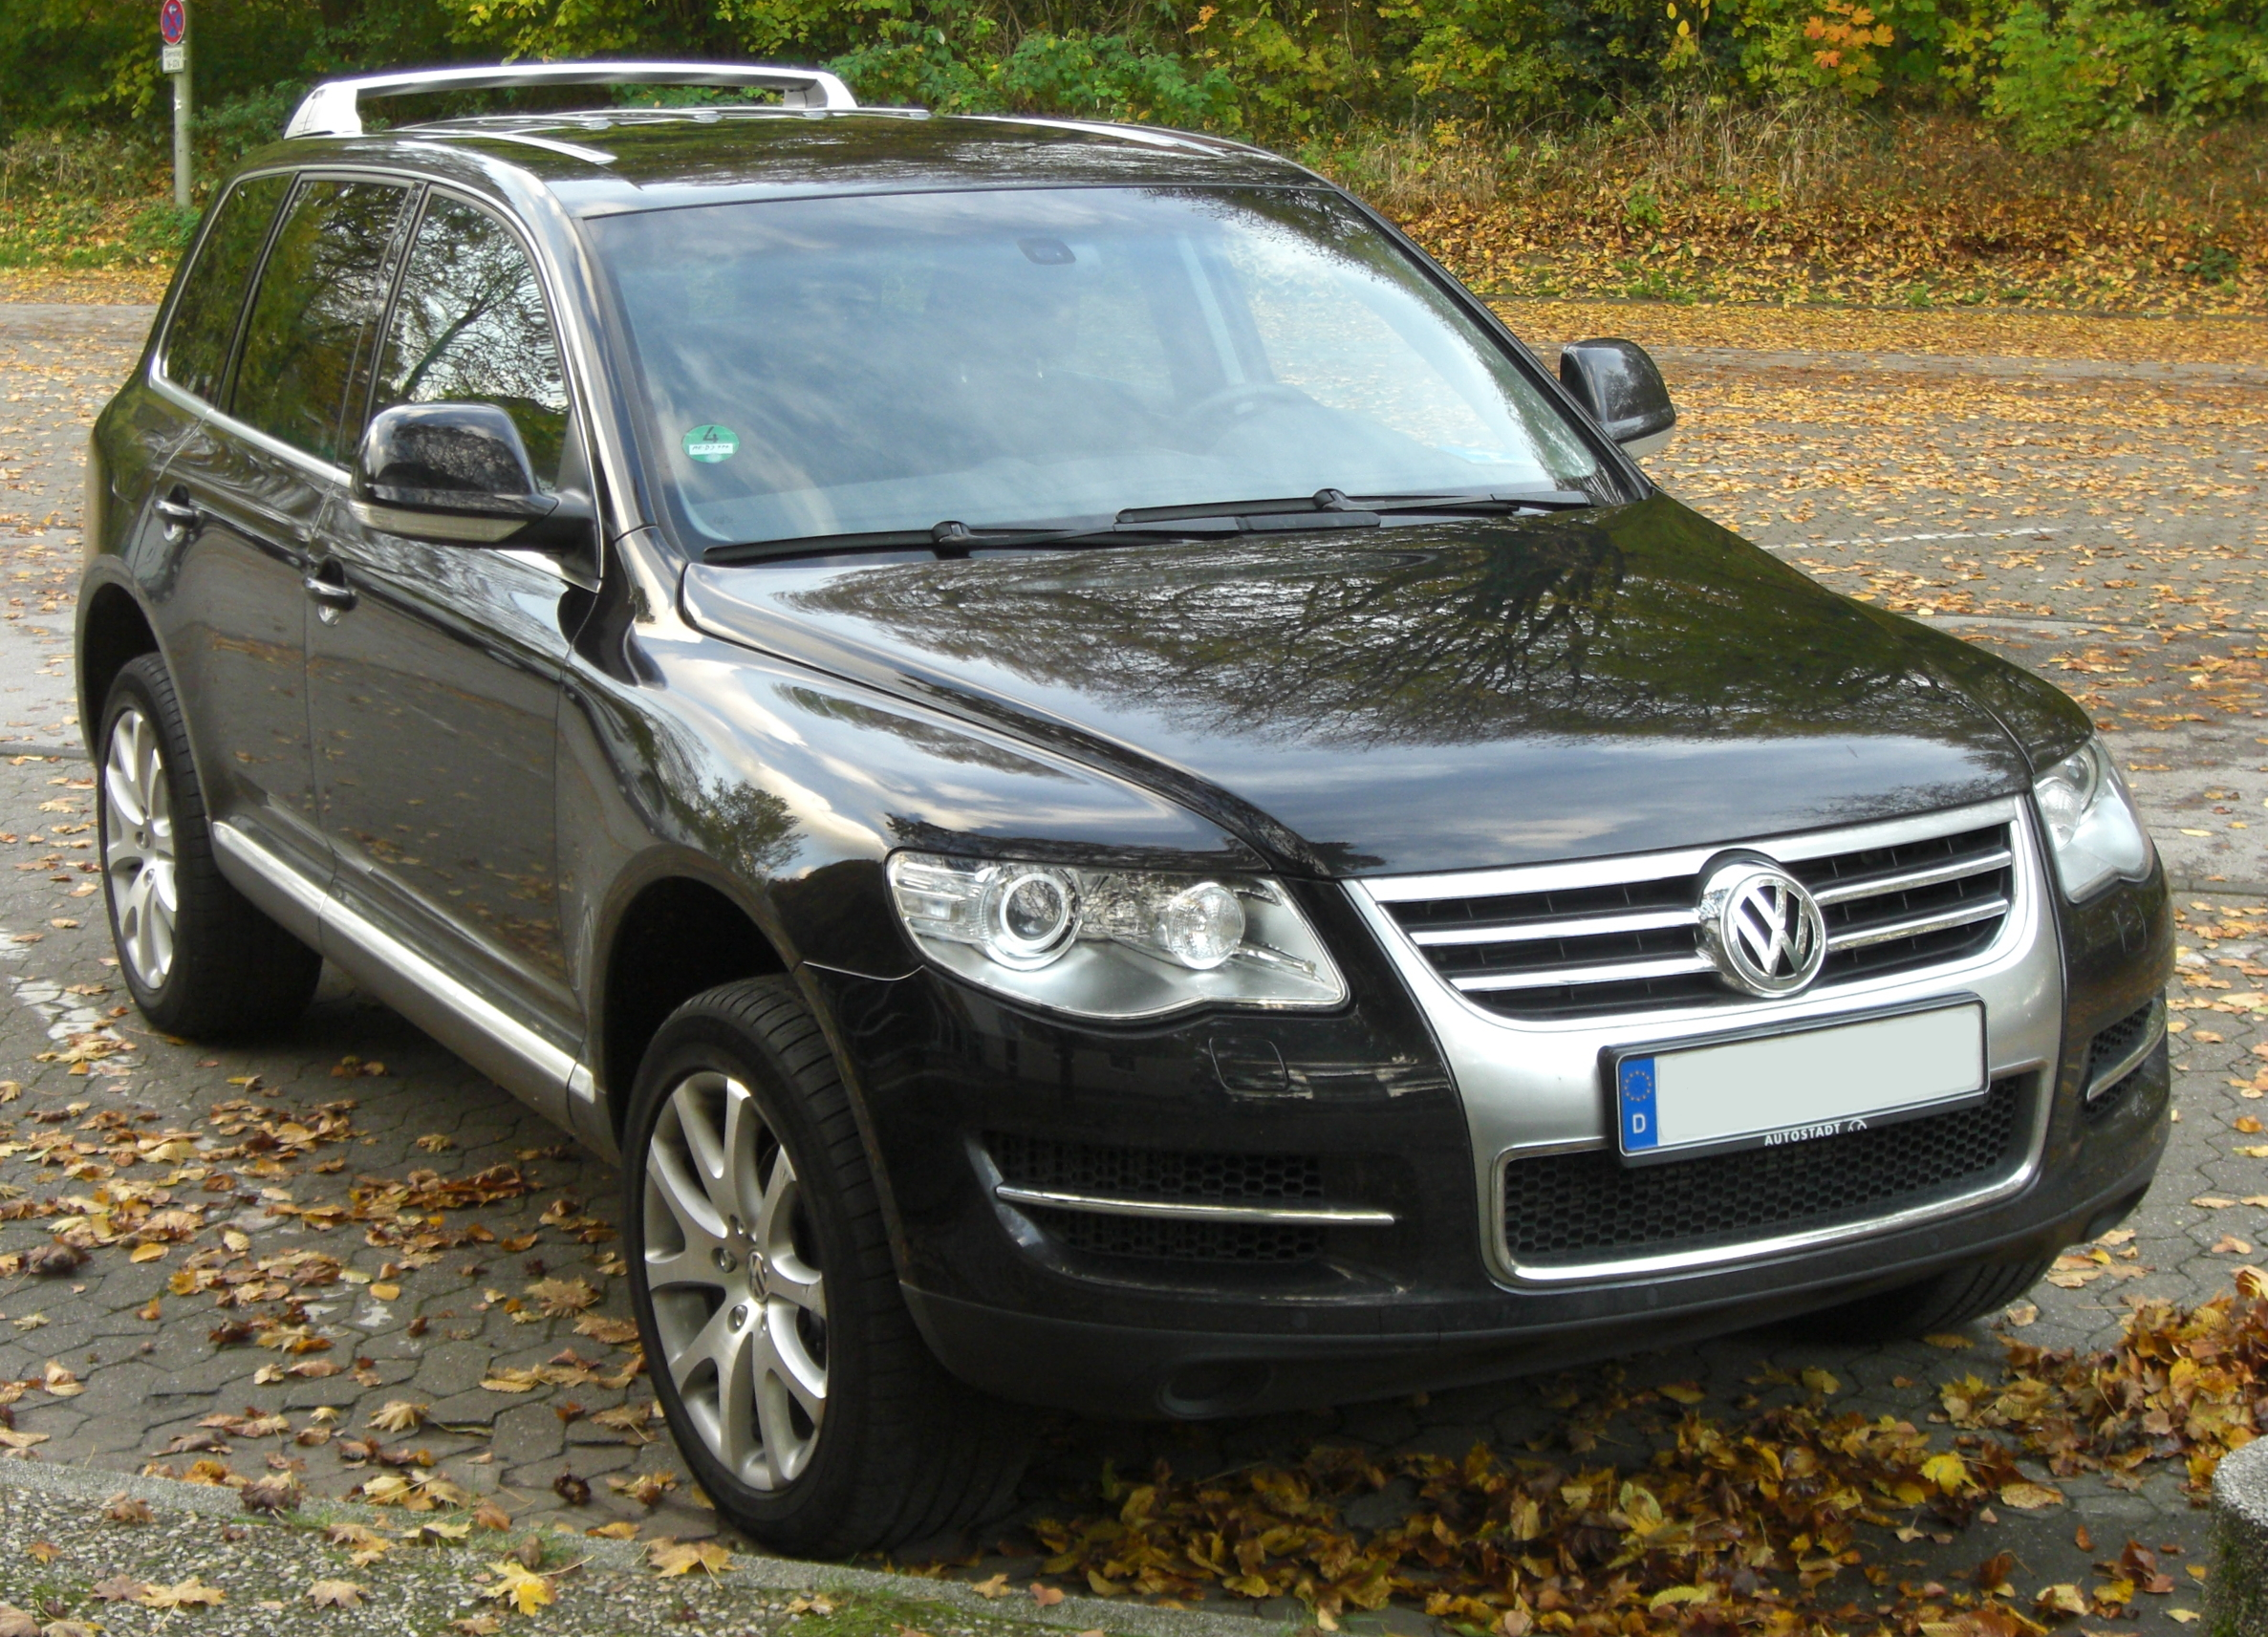 file vw touareg v10 tdi facelift seit 2007 front mj jpg wikimedia commons. Black Bedroom Furniture Sets. Home Design Ideas